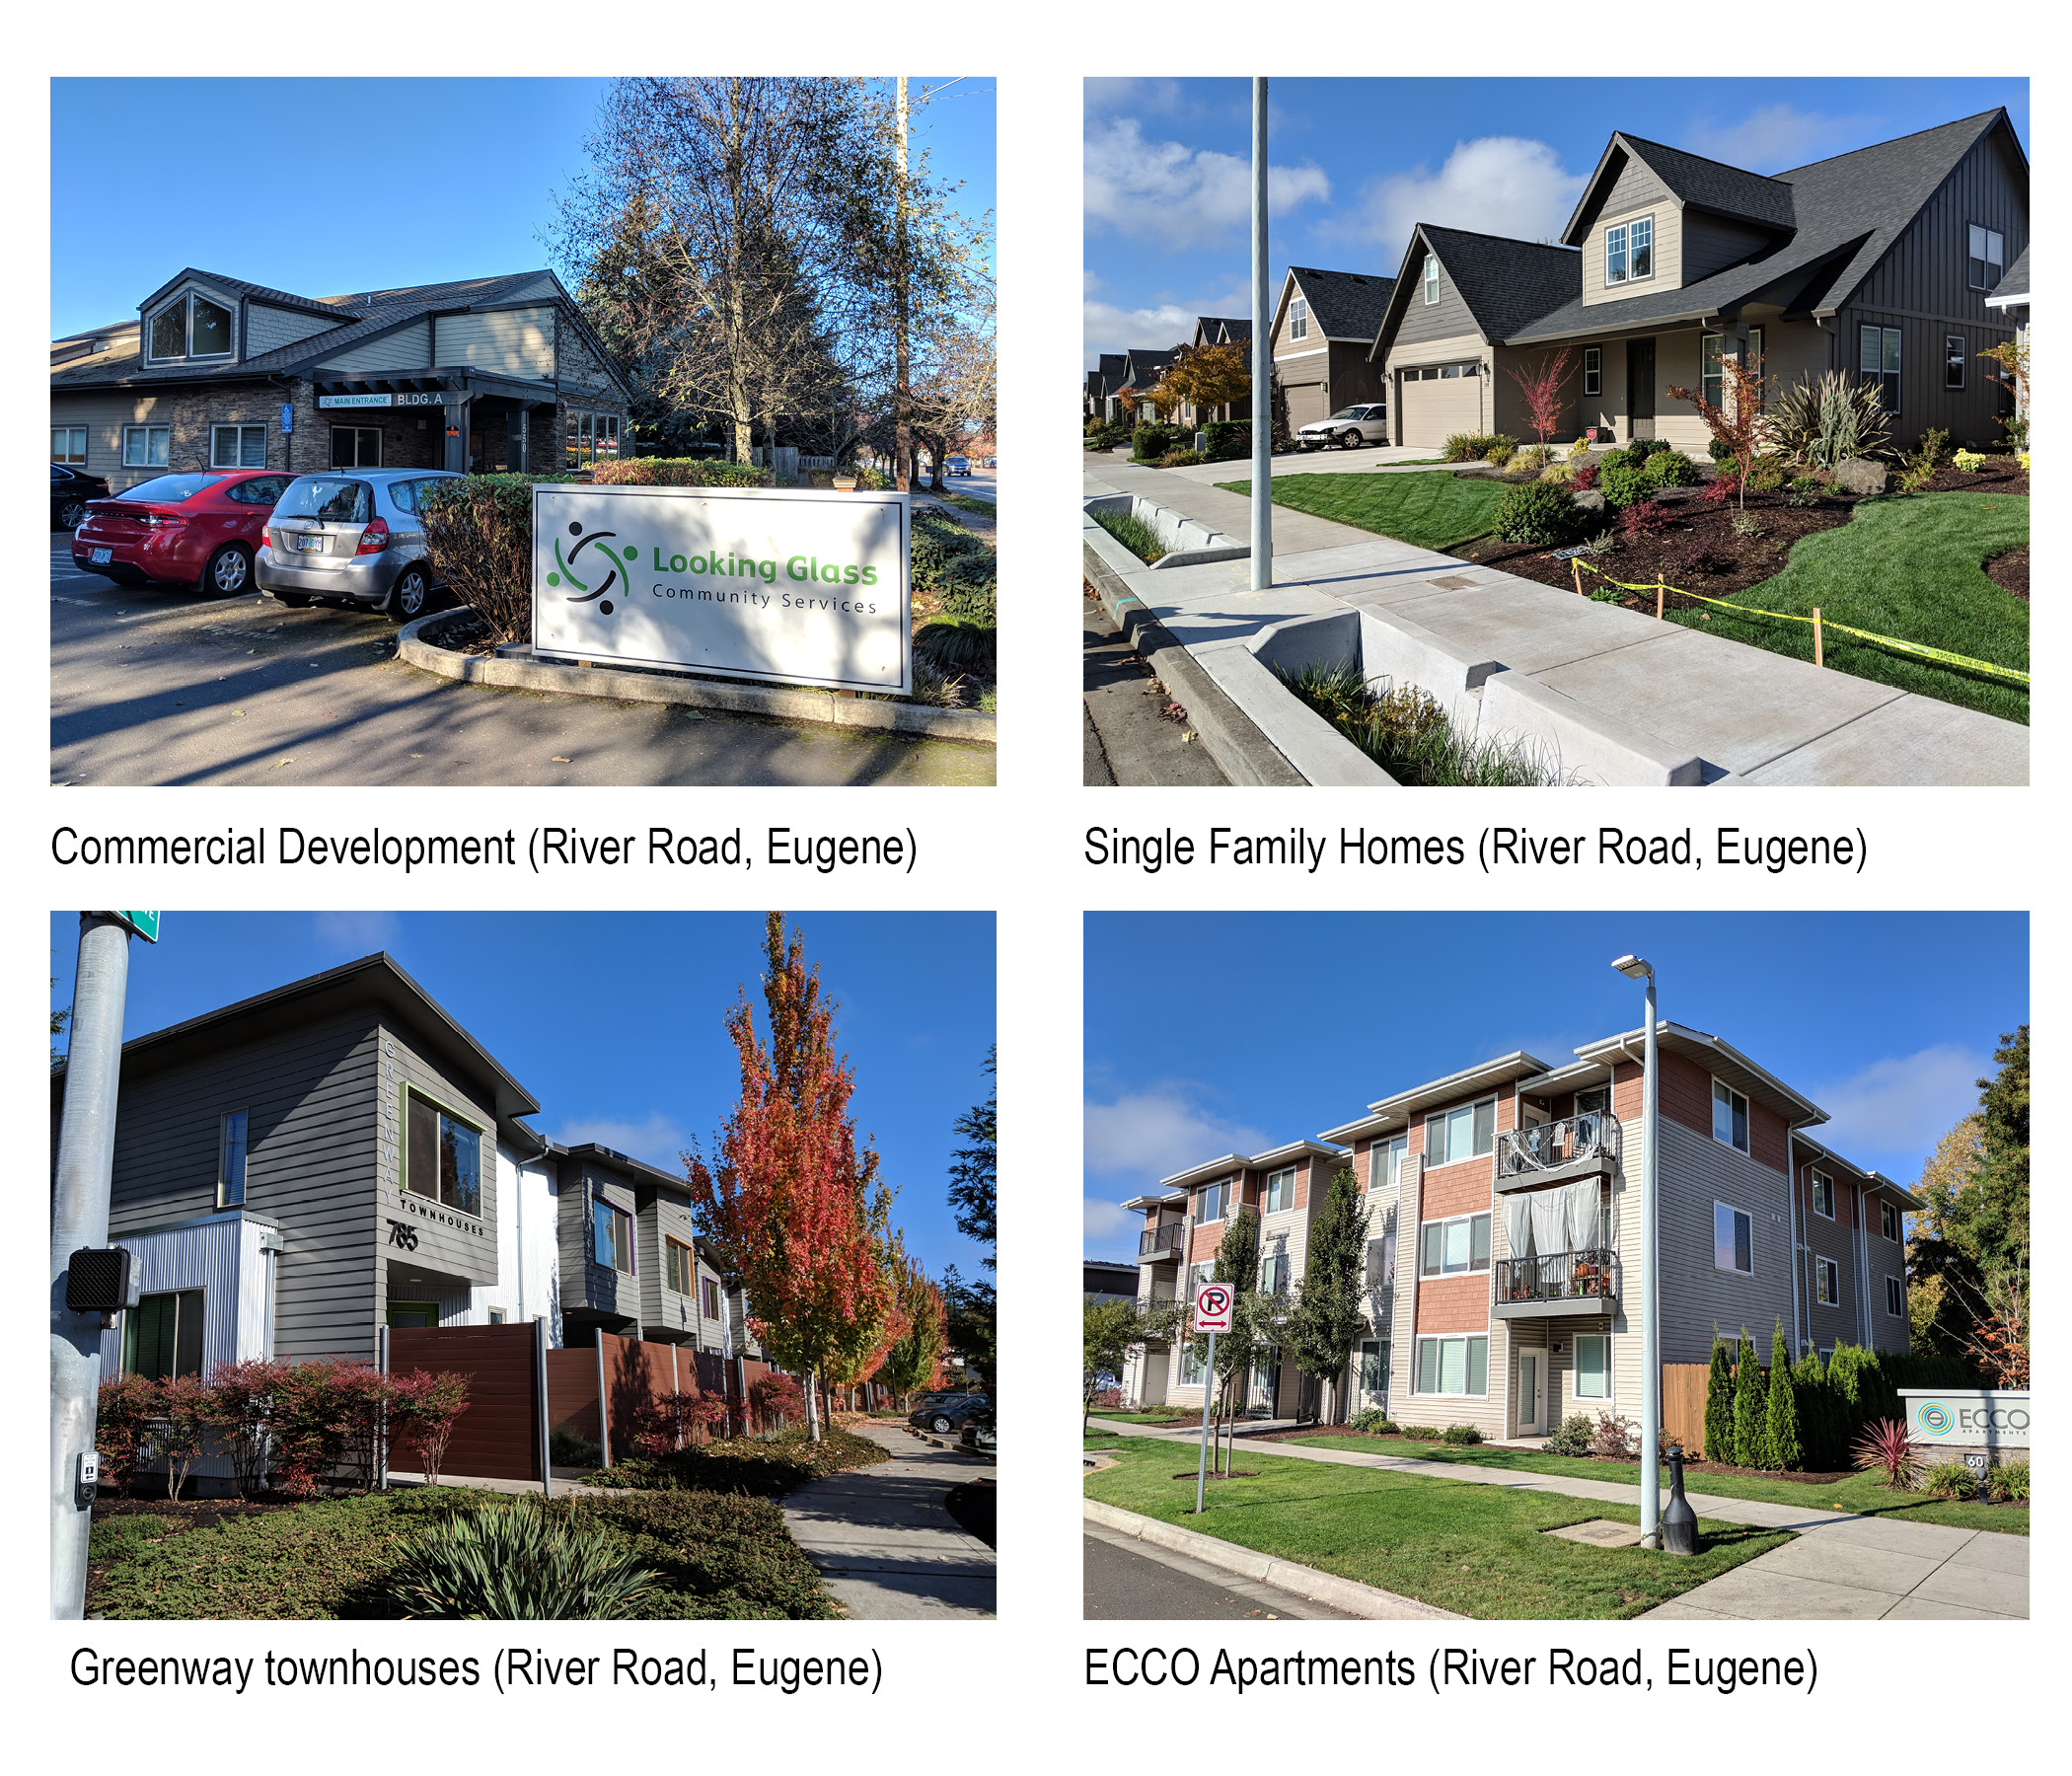 "<span style=""color: #36545f;""><strong>Recent projects on River Road developed under current zoning </strong></span>"